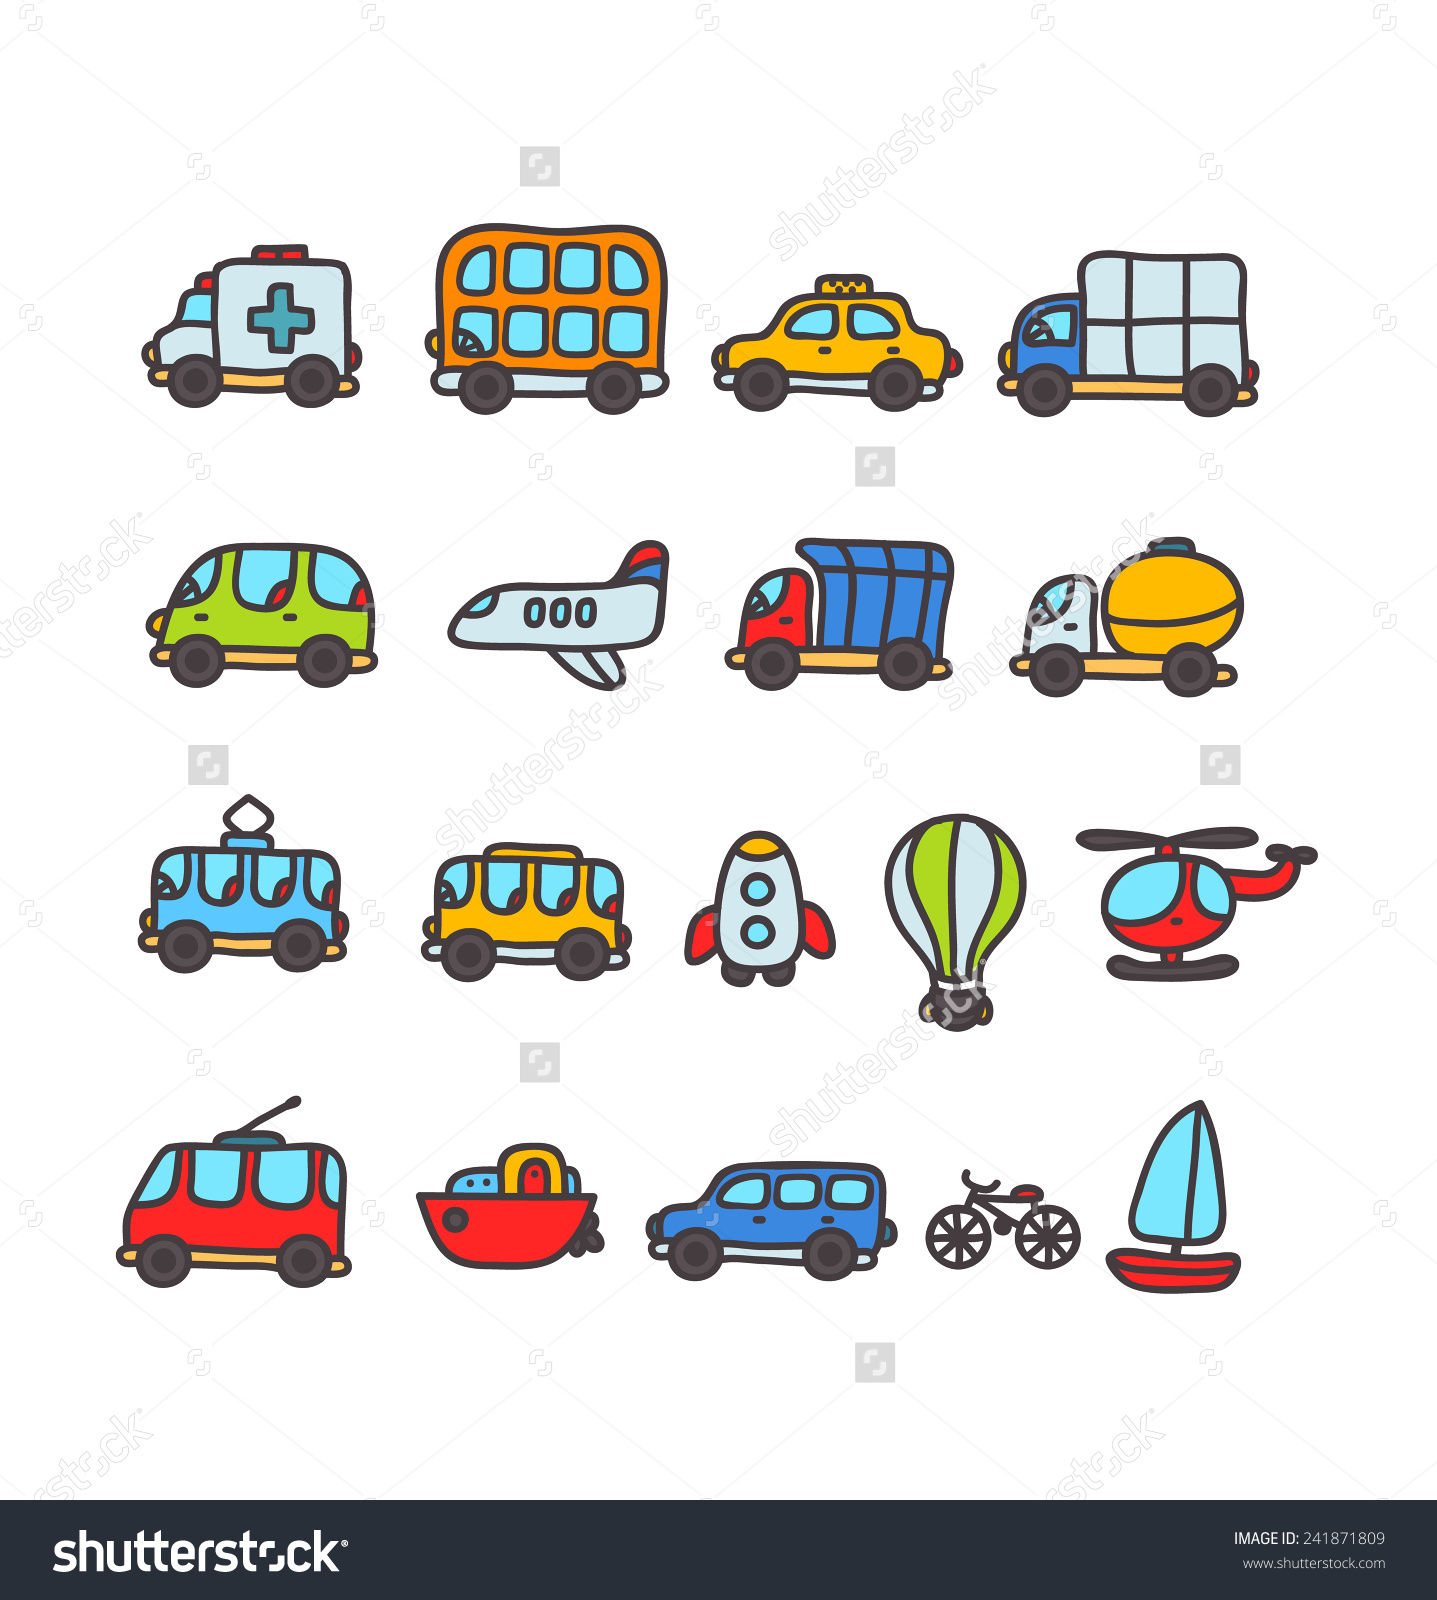 Cute Cartoon Hand Drawn Transport Icon Stock Vector 241871809.